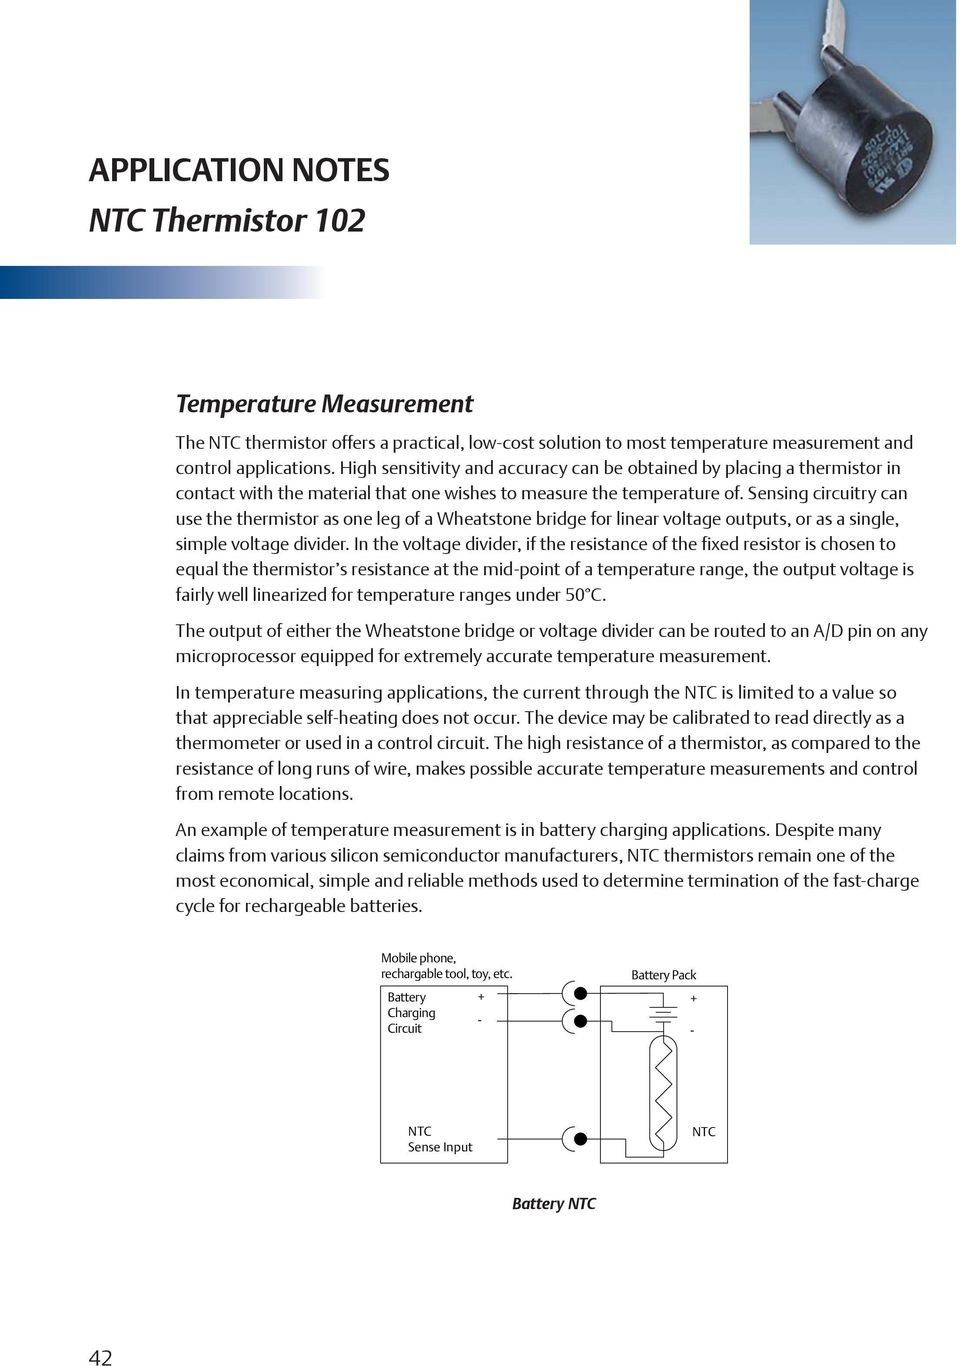 APPLICATION NOTES DEFINITIONS NTC Thermistor PDF